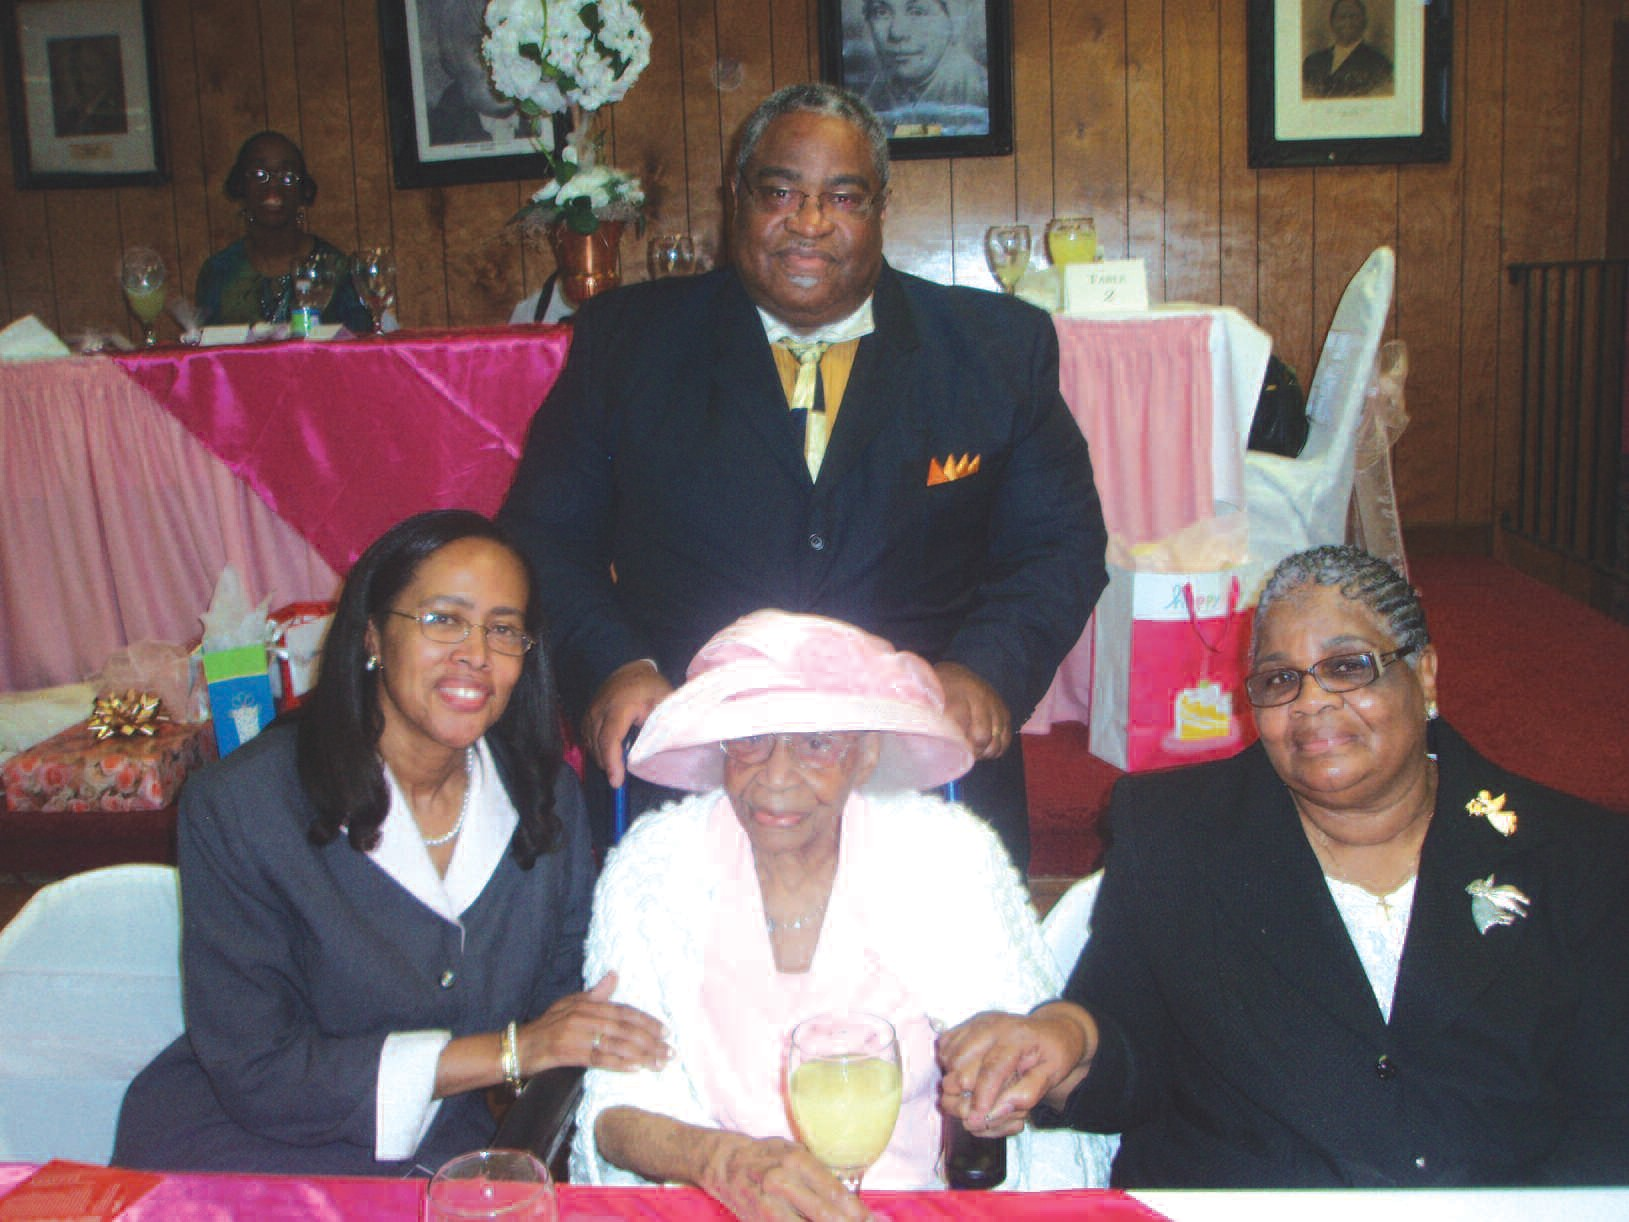 Seated L-R: Mary Ann Foster (First Lady), Alberta B. Stokes (Honoree), Rev. Delores Johnson Standing: Rev. Dr. John Foster